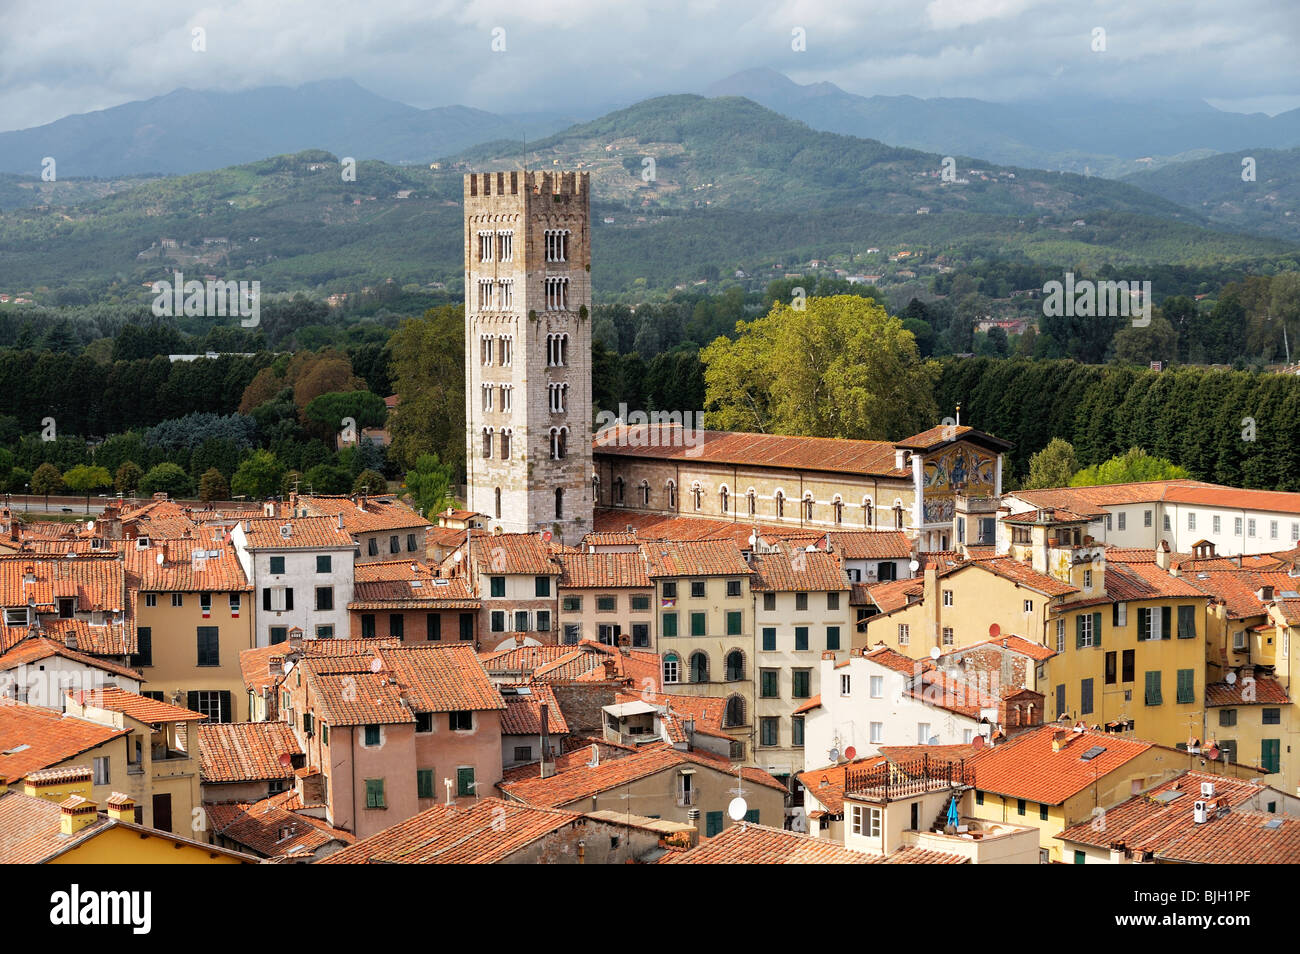 The tower of the Basilica di San Frediano rises above the mediaeval city of Lucca, Tuscany, Italy - Stock Image